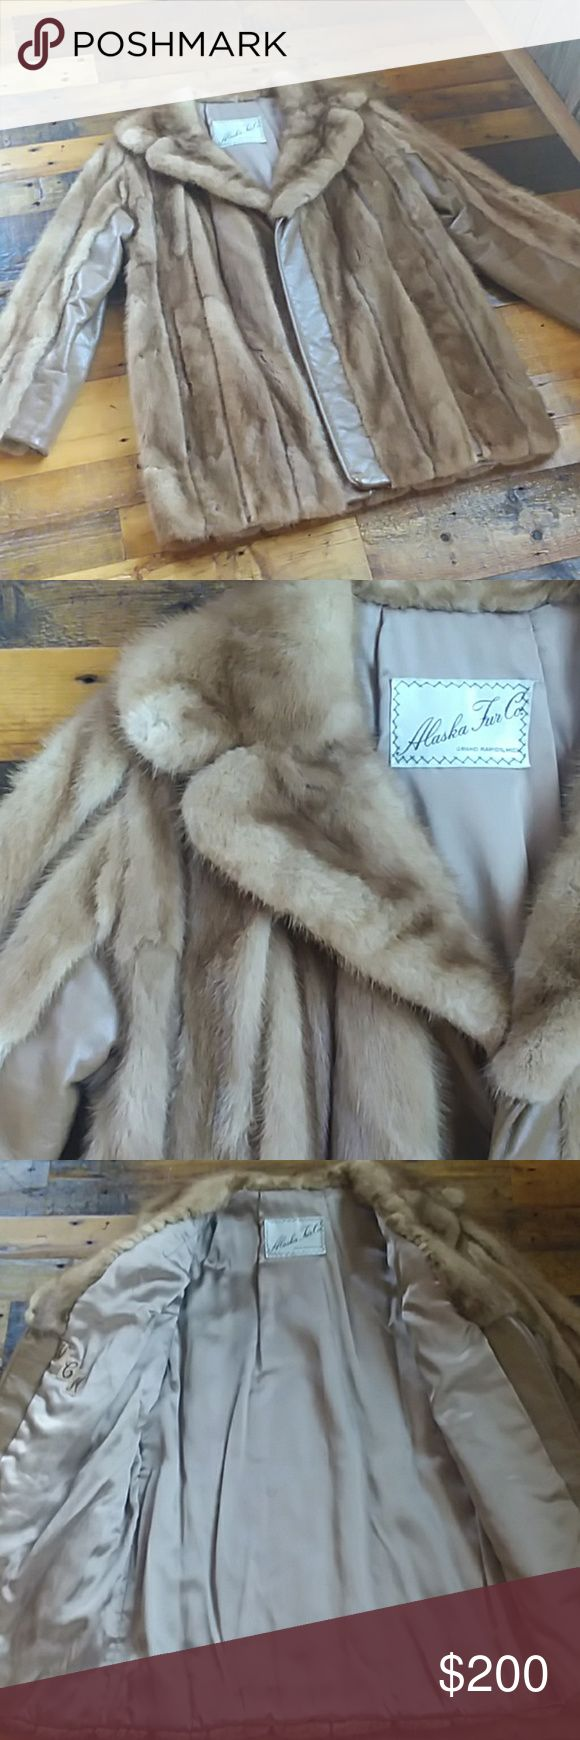 "Vintage mink fur coat I don't have a lot of info on this coat. I'm told by a fur expert it's mink and possibly from the 70s or 80s and that it's worth $200-$300. There's no size on it but I'm a small and it fits me. It was made by the Alaska Fur Co. but I don't have the original certificate. Fur is in good shape. Initials of original owner are sewn in the inside. Open front jacket, no buttons or zipper for closure. Measurements: sleeves from shoulder to hem 21"". Pit to pit 18 1/2"". Length…"